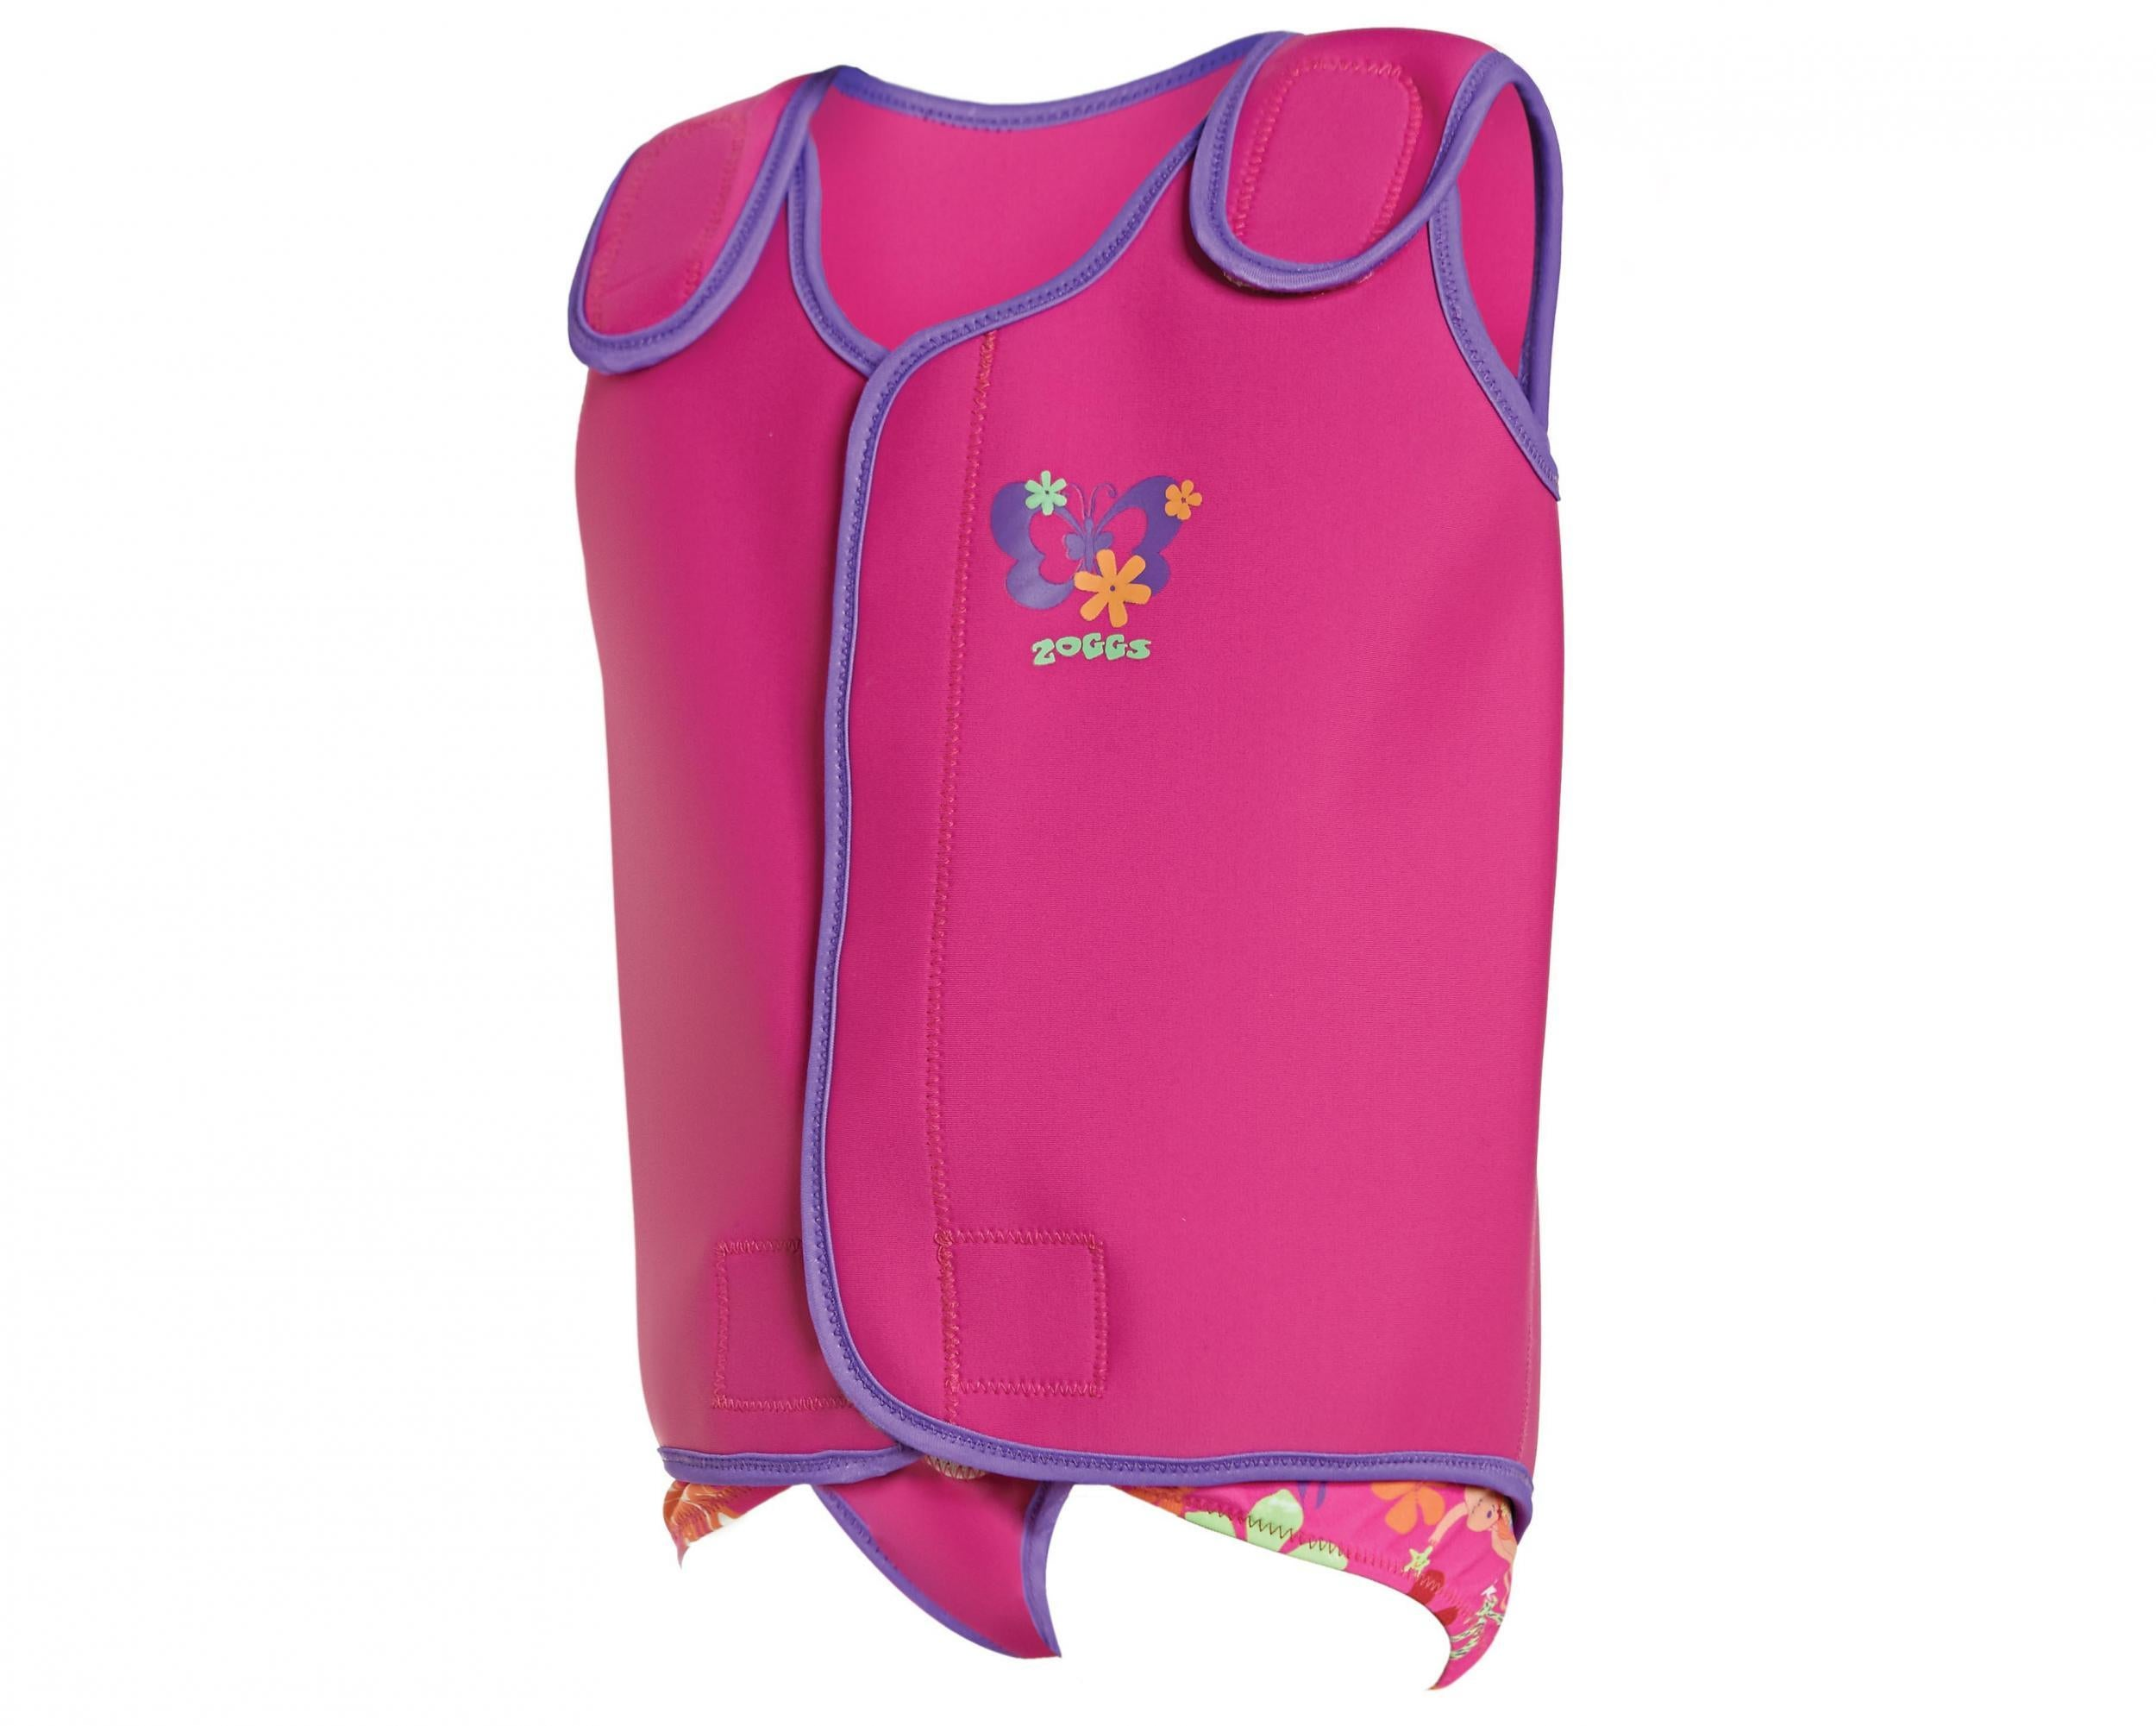 puts shopping to on the side test your infant rings flotation neck com floats otteroo float